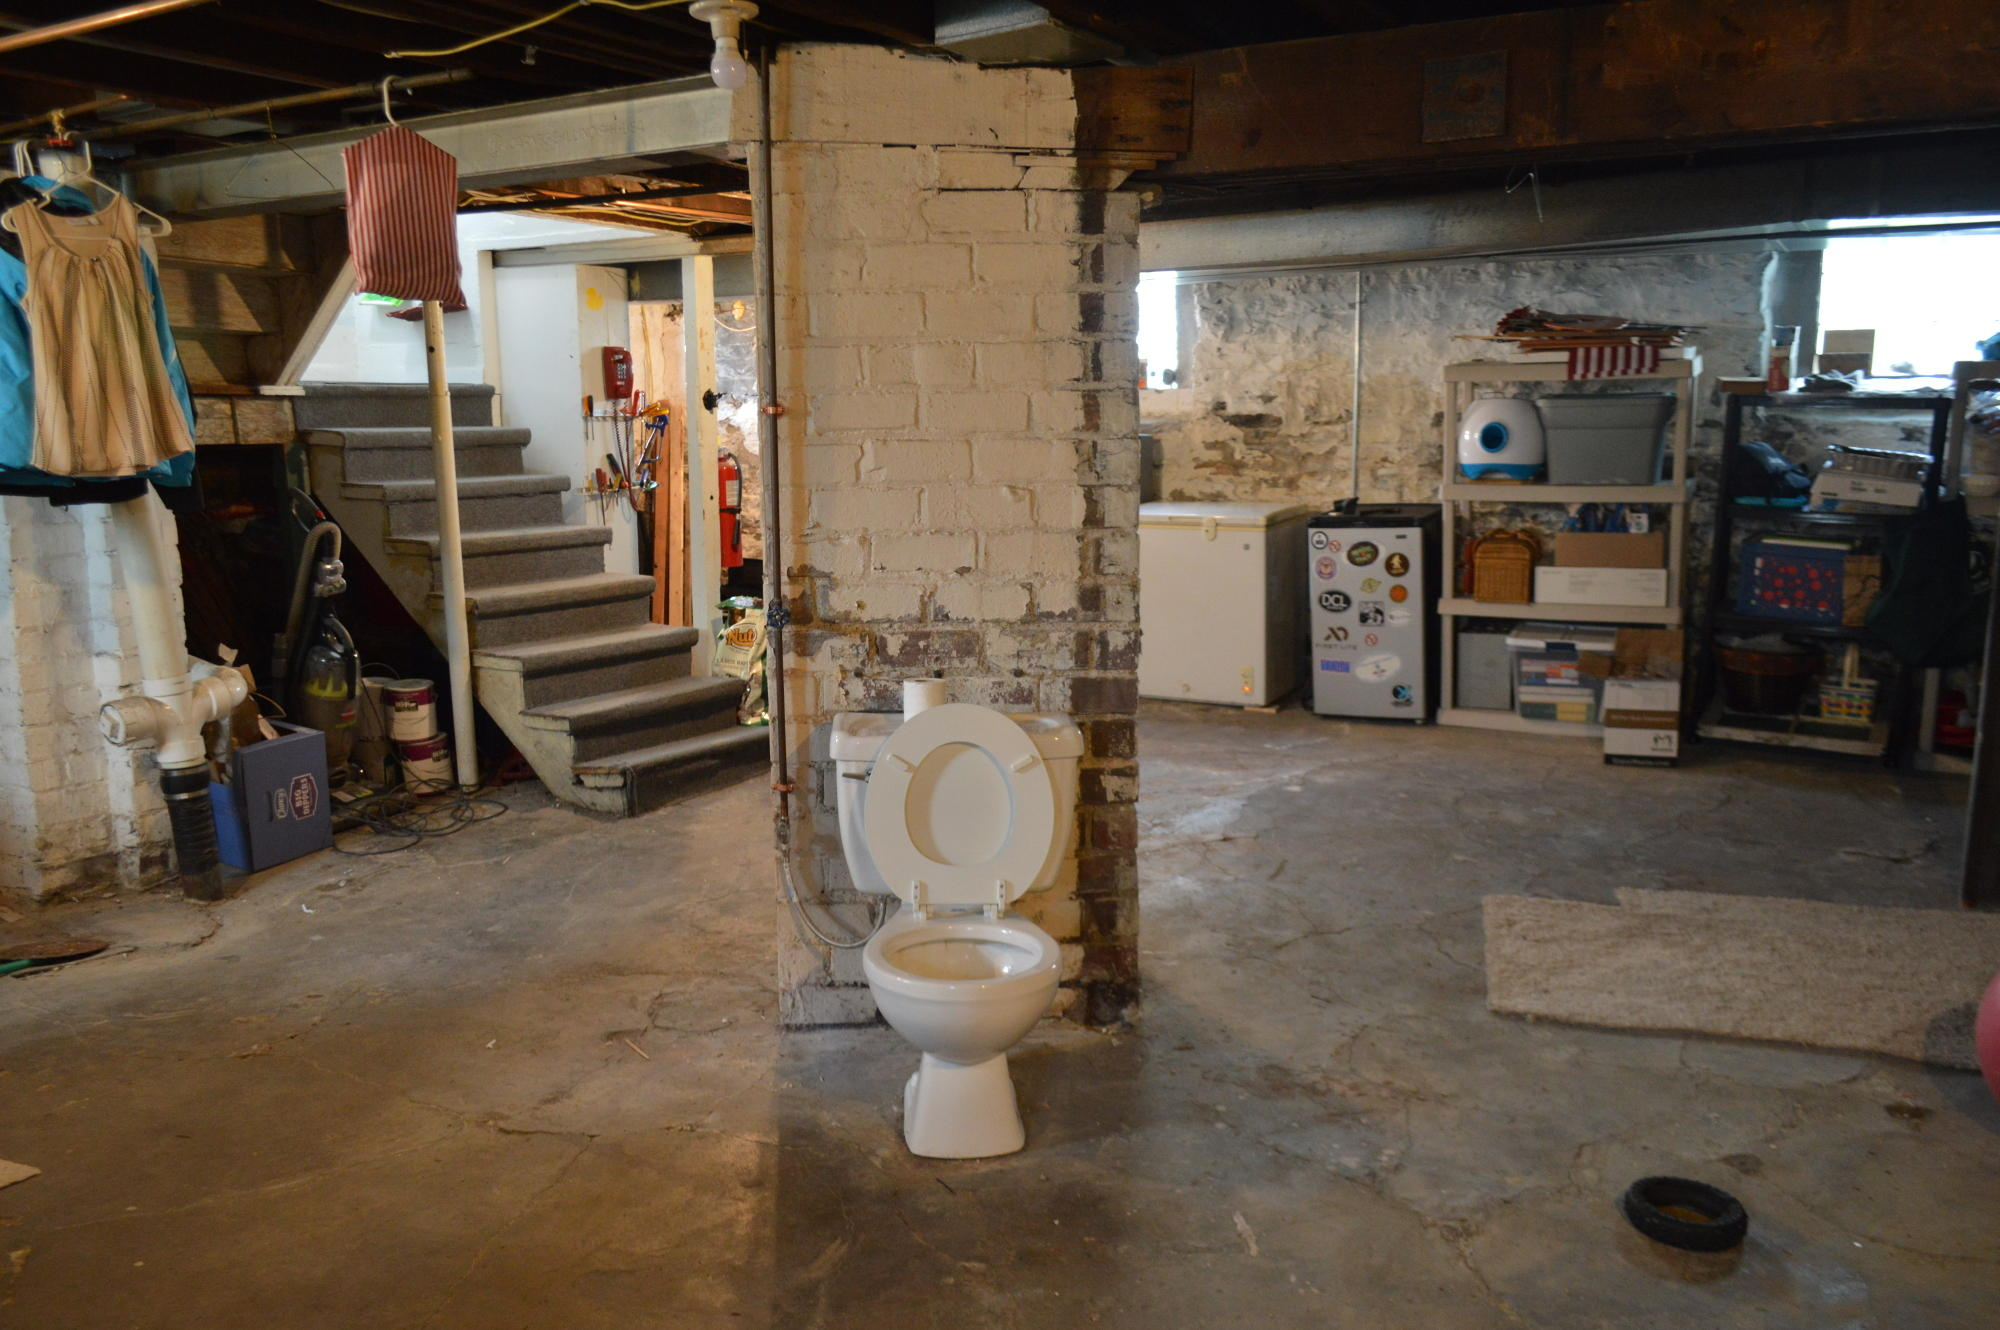 Lighting Basement Washroom Stairs: Documenting The Pittsburgh Potty: An Architectural Mystery